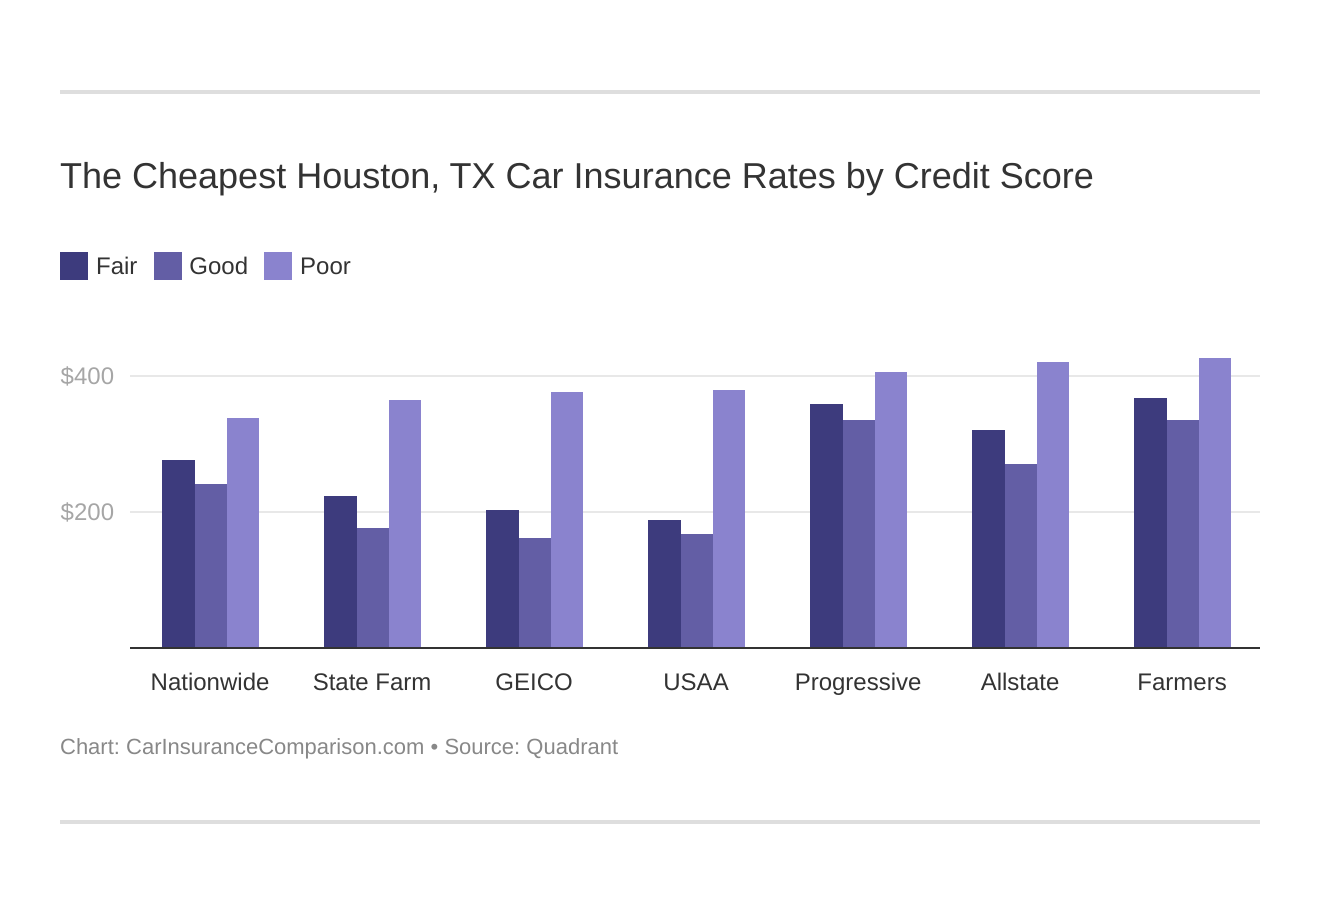 The Cheapest Houston, TX Car Insurance Rates by Credit Score